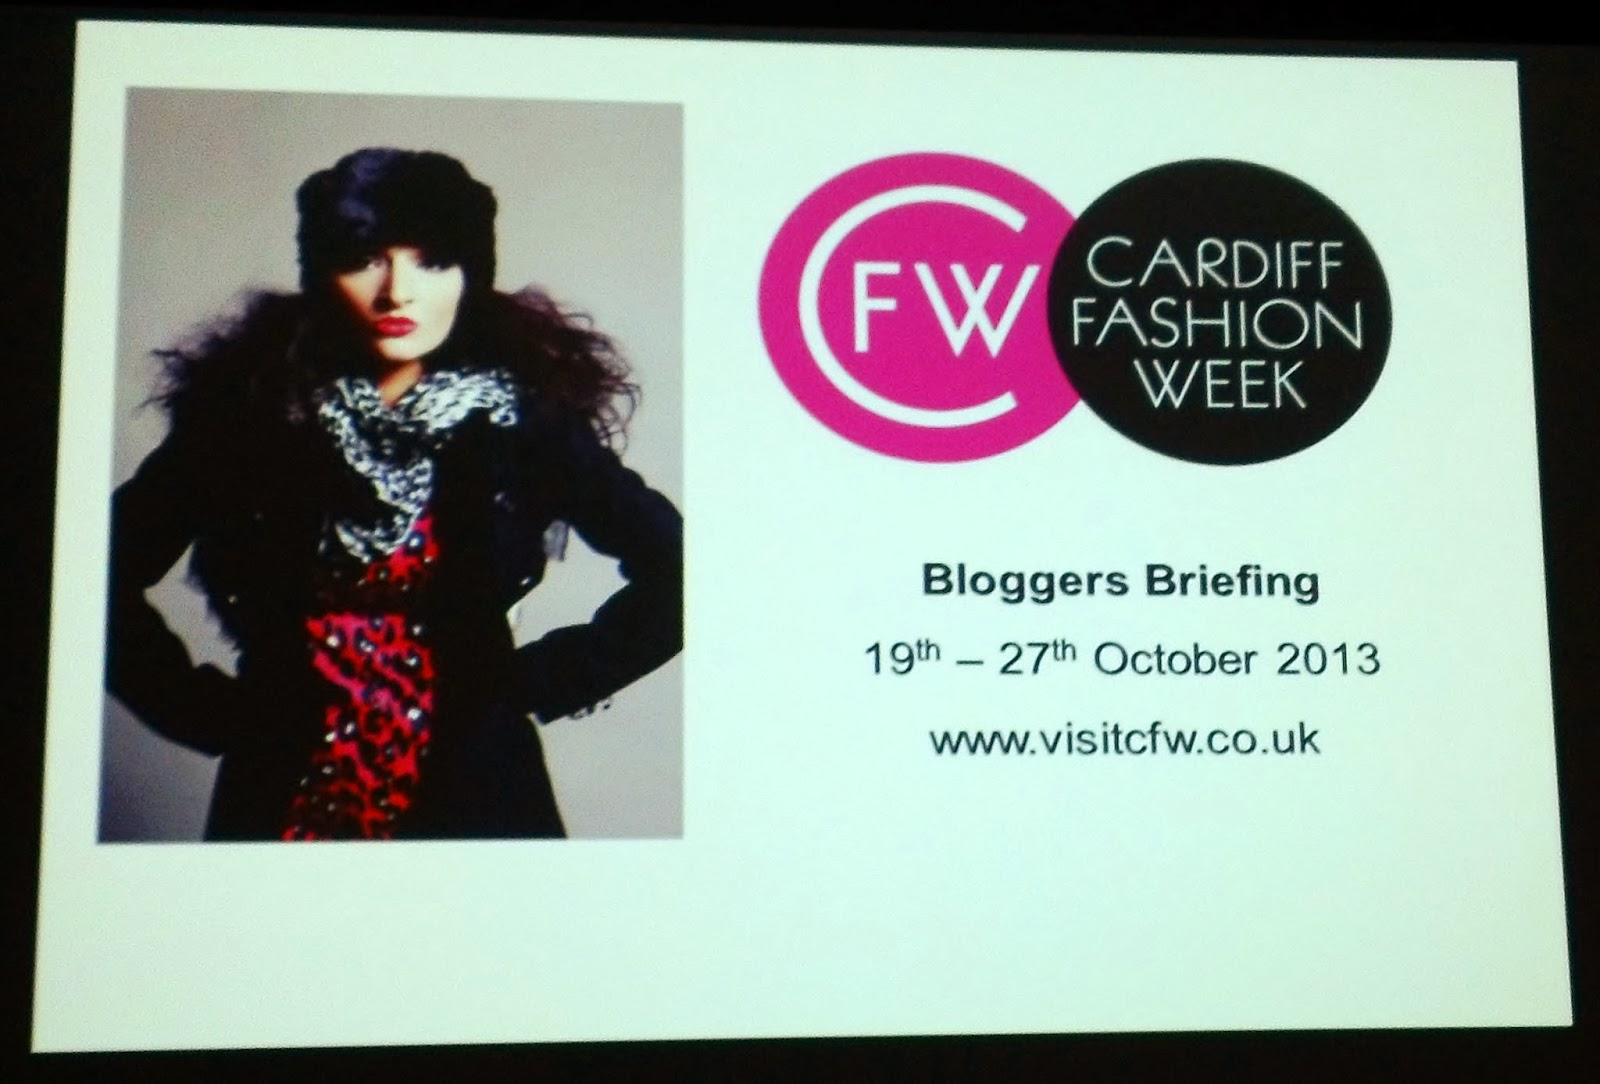 Cardiff Fashion Week Bloggers Brief, Cardiff Fashion Week, Entrecote